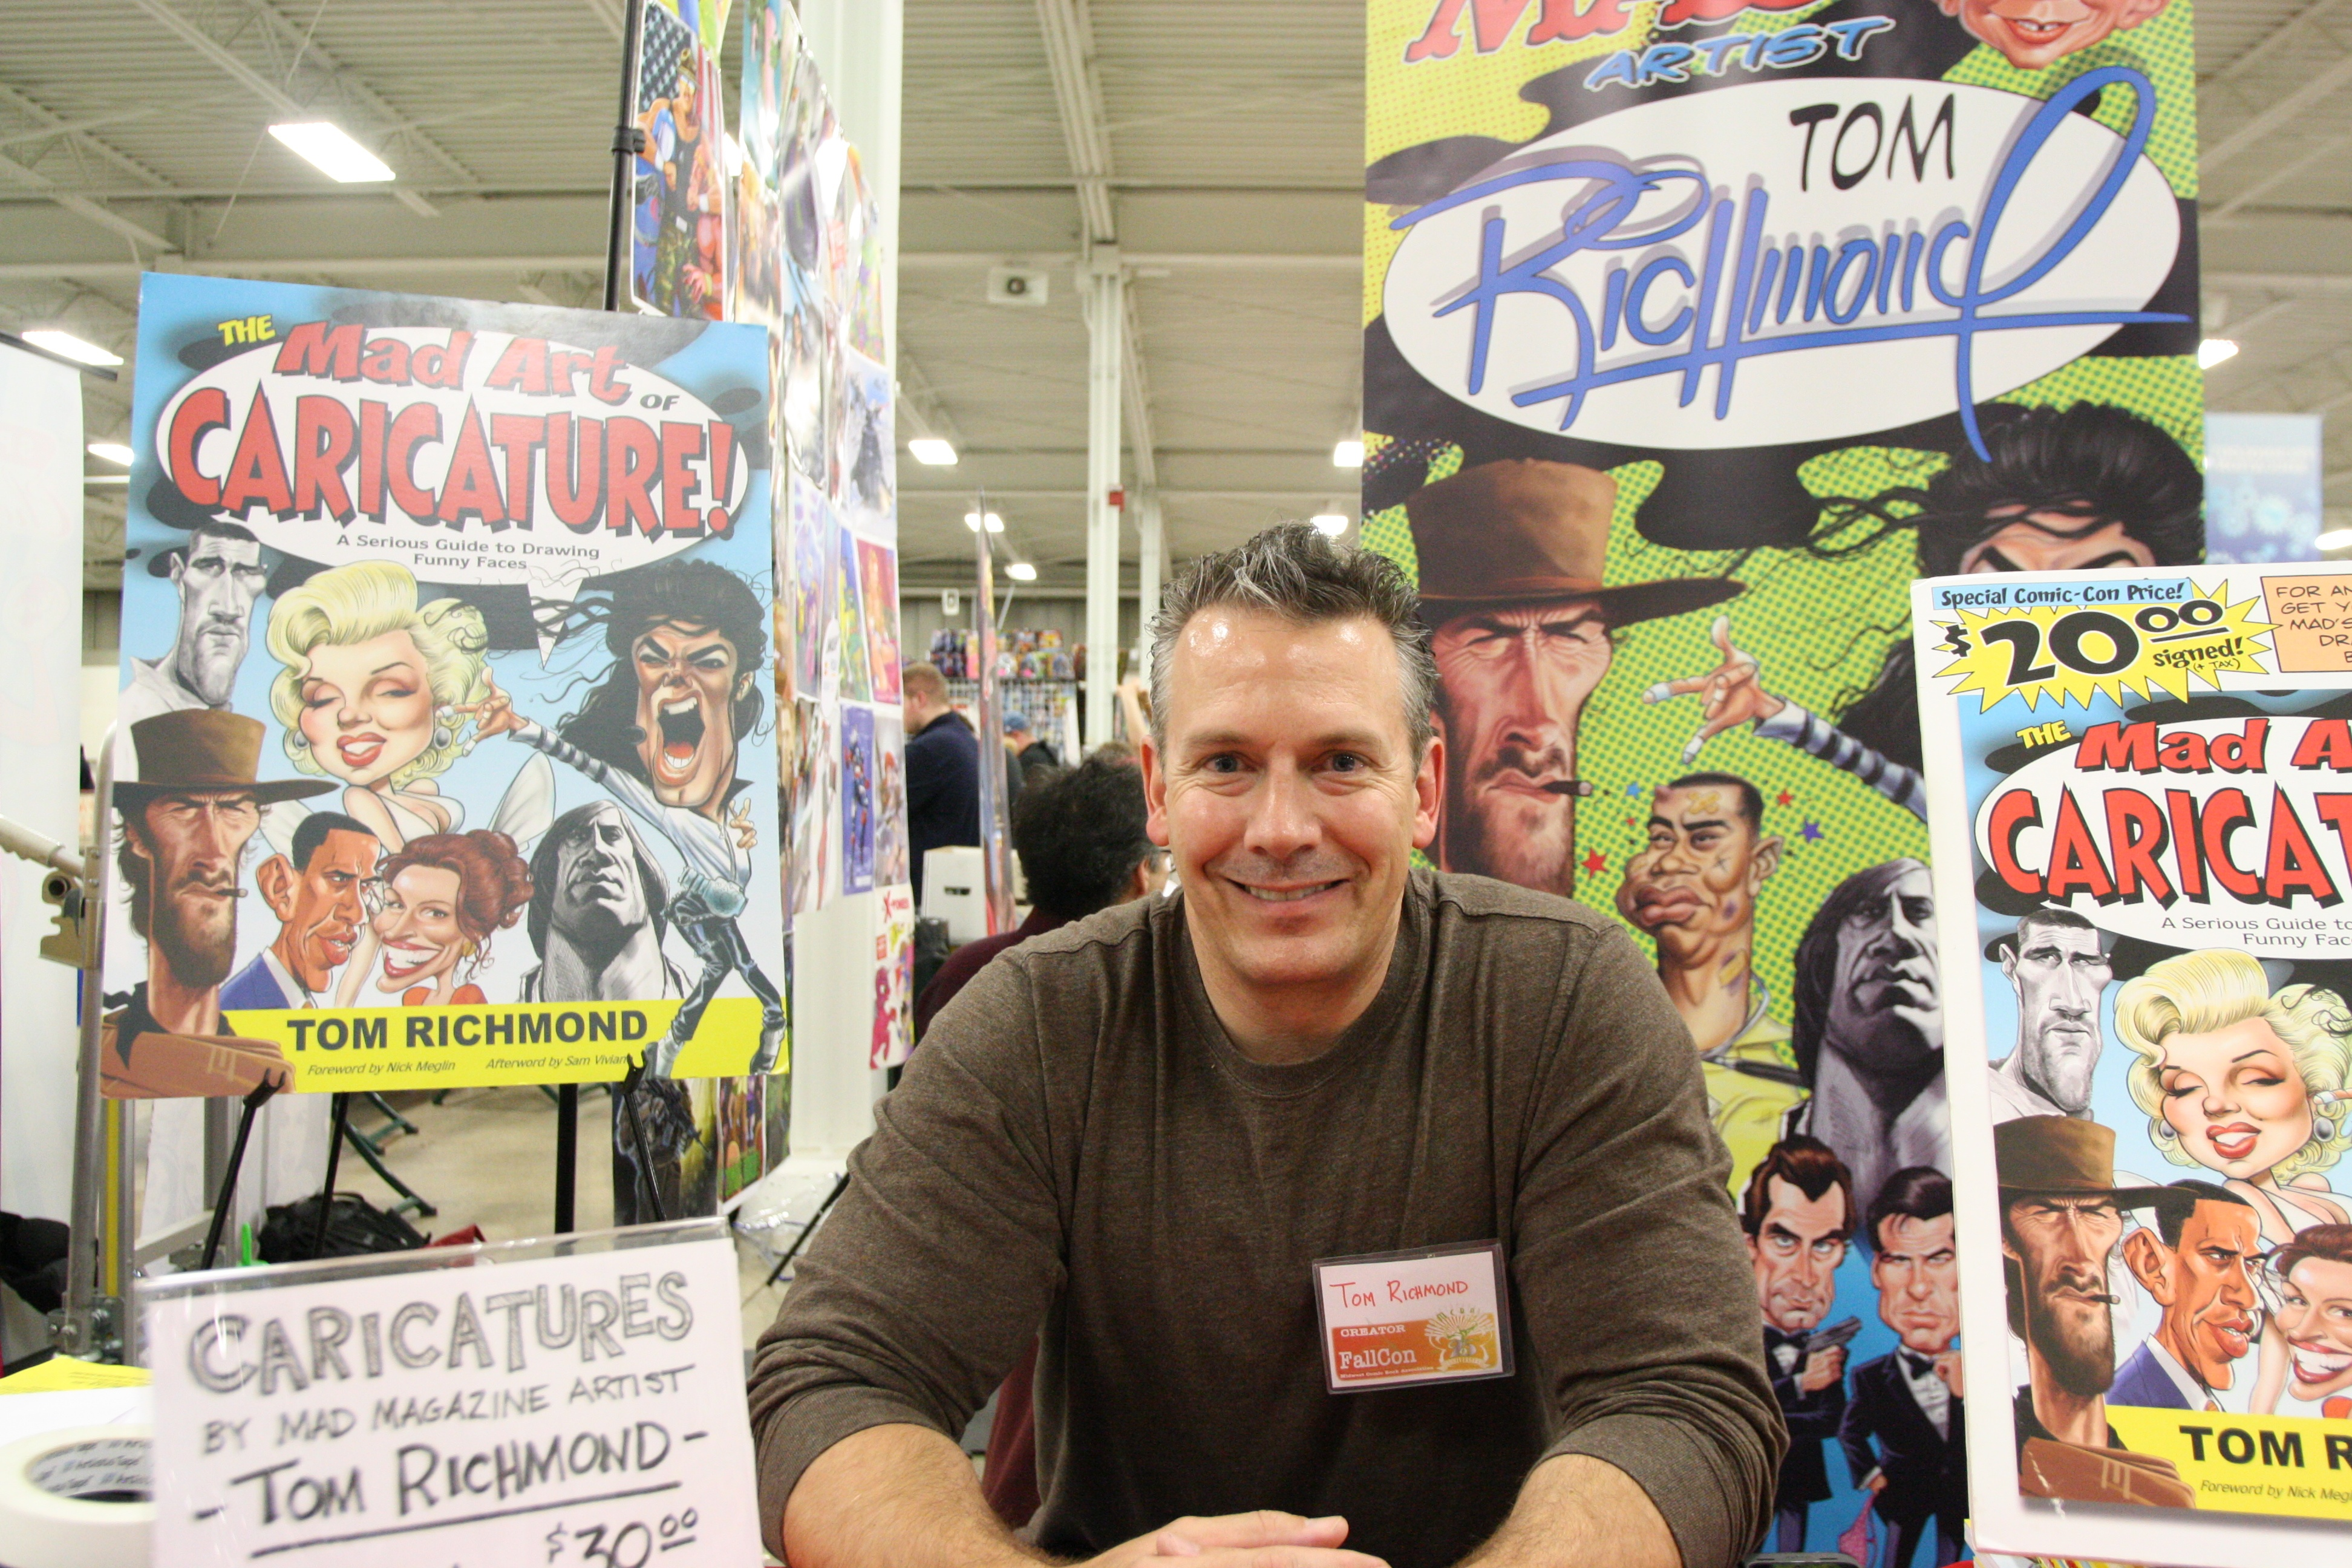 The Art of Caricature with Tom Richmond